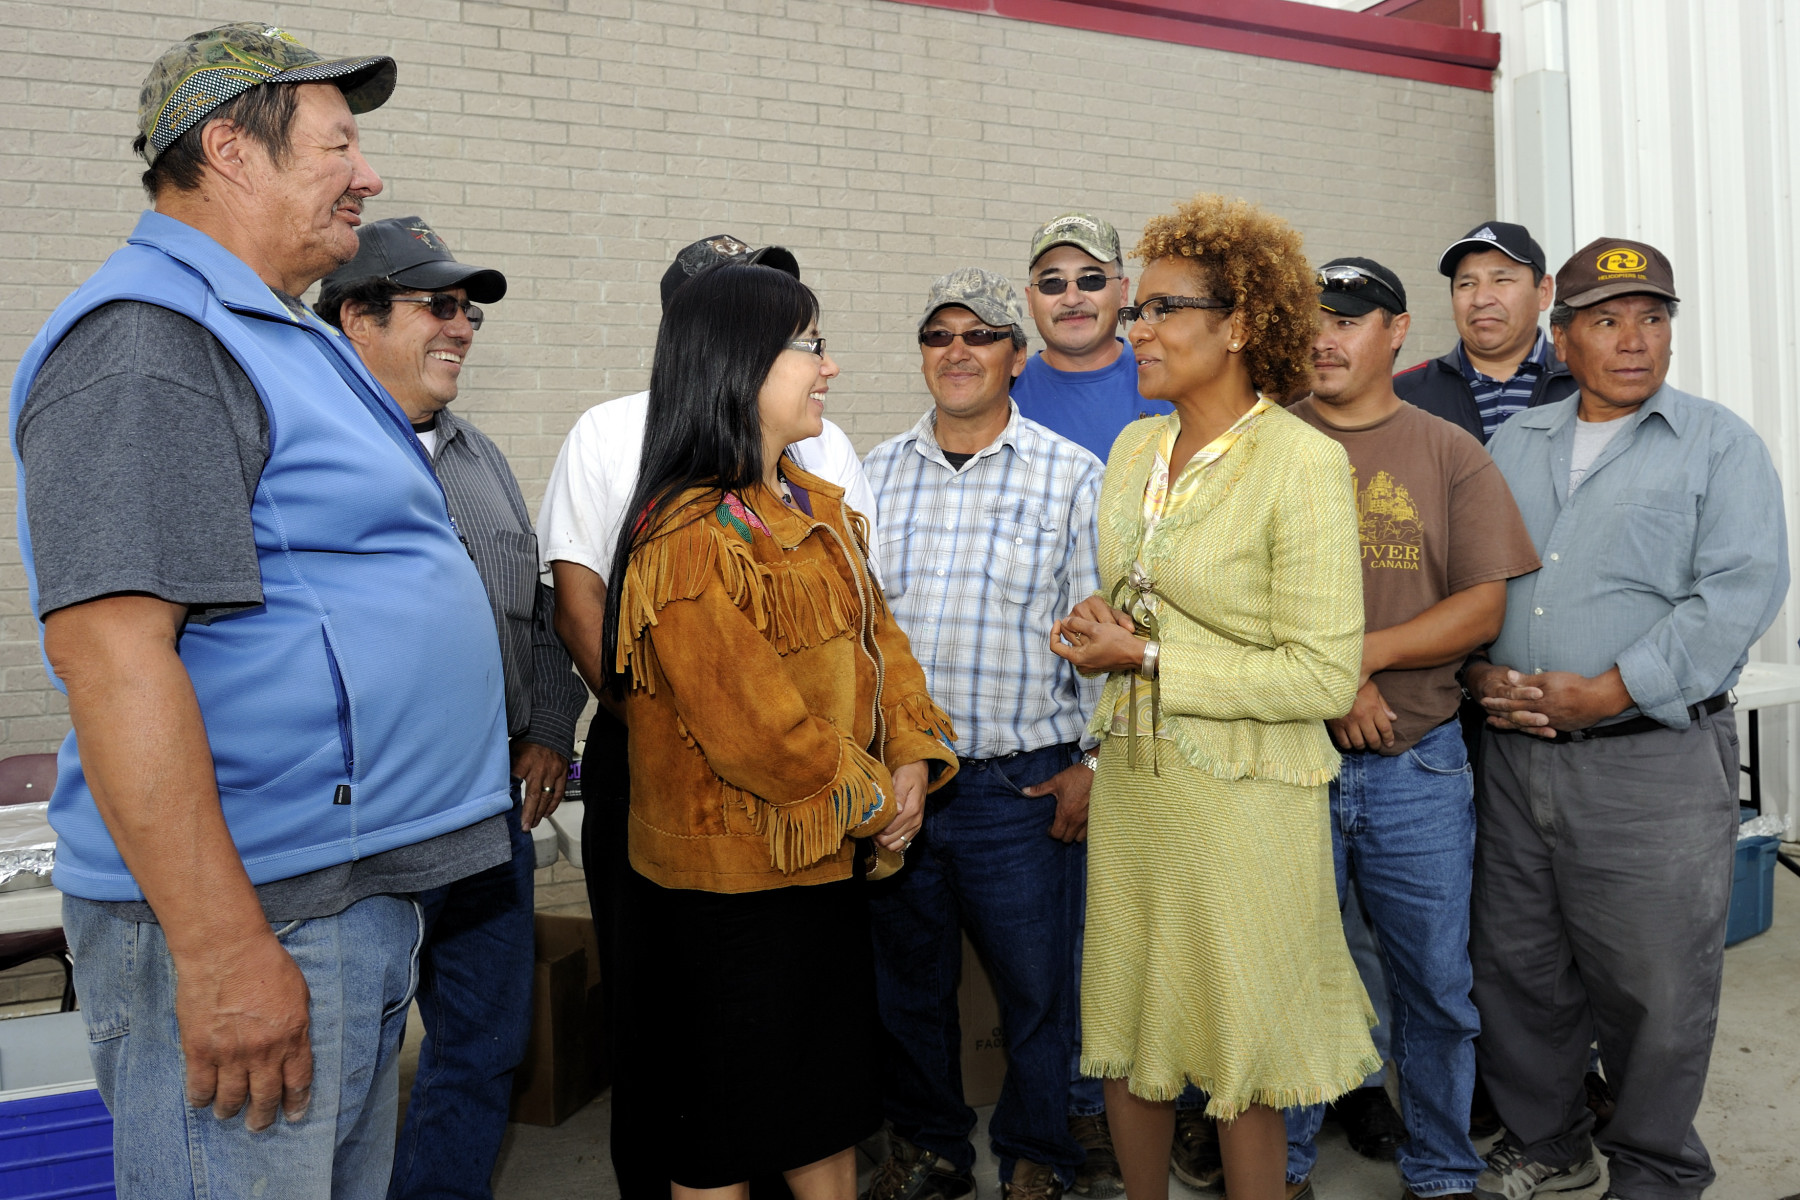 Chief of the Lac La Ronge Indian Band Ms. Tammy Cook-Searson (left) introduced Her Excellency to the fishermen responsible for providing the fish at the community celebration.